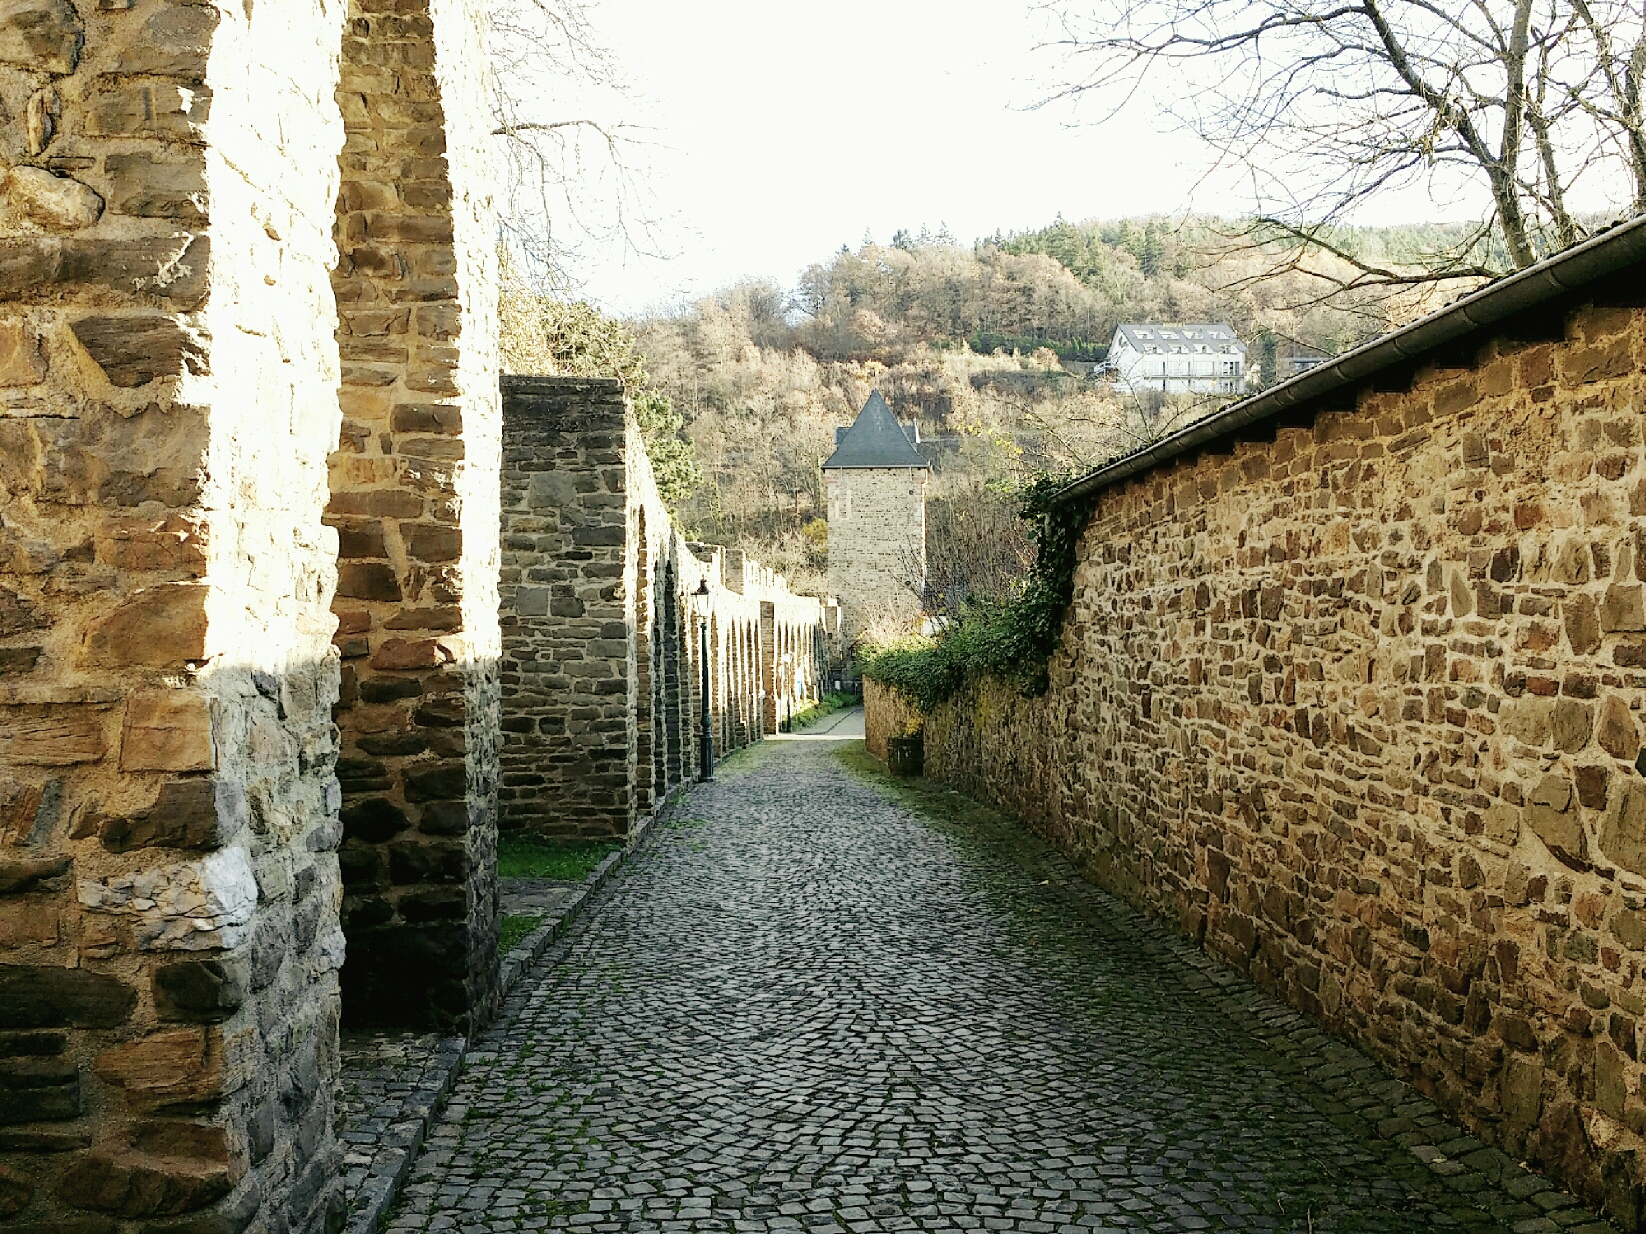 Bad Münstereifel - Wallgasse